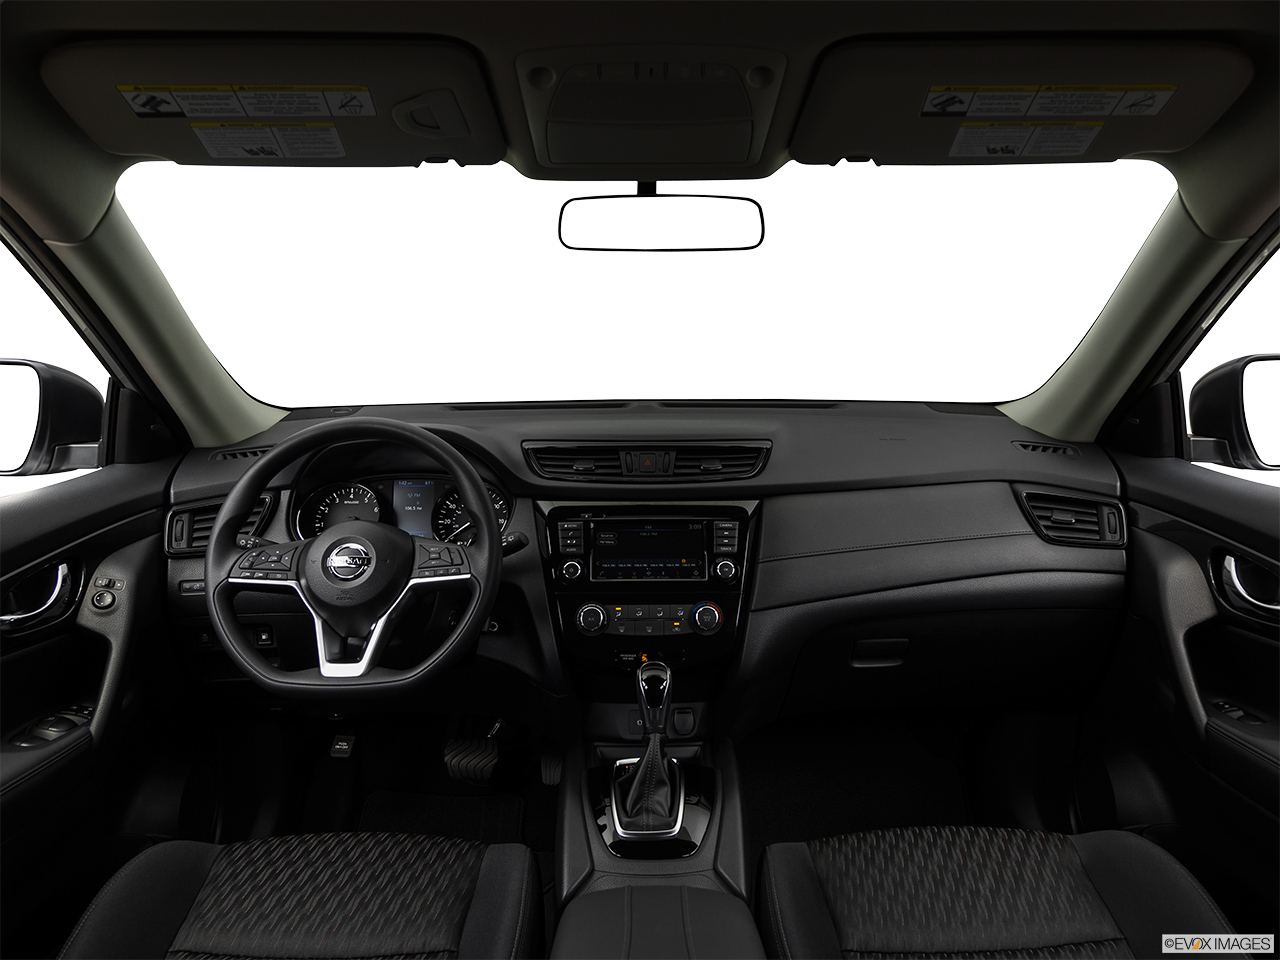 Nissan X-Trail 2018, Saudi Arabia, Centered wide dash shot